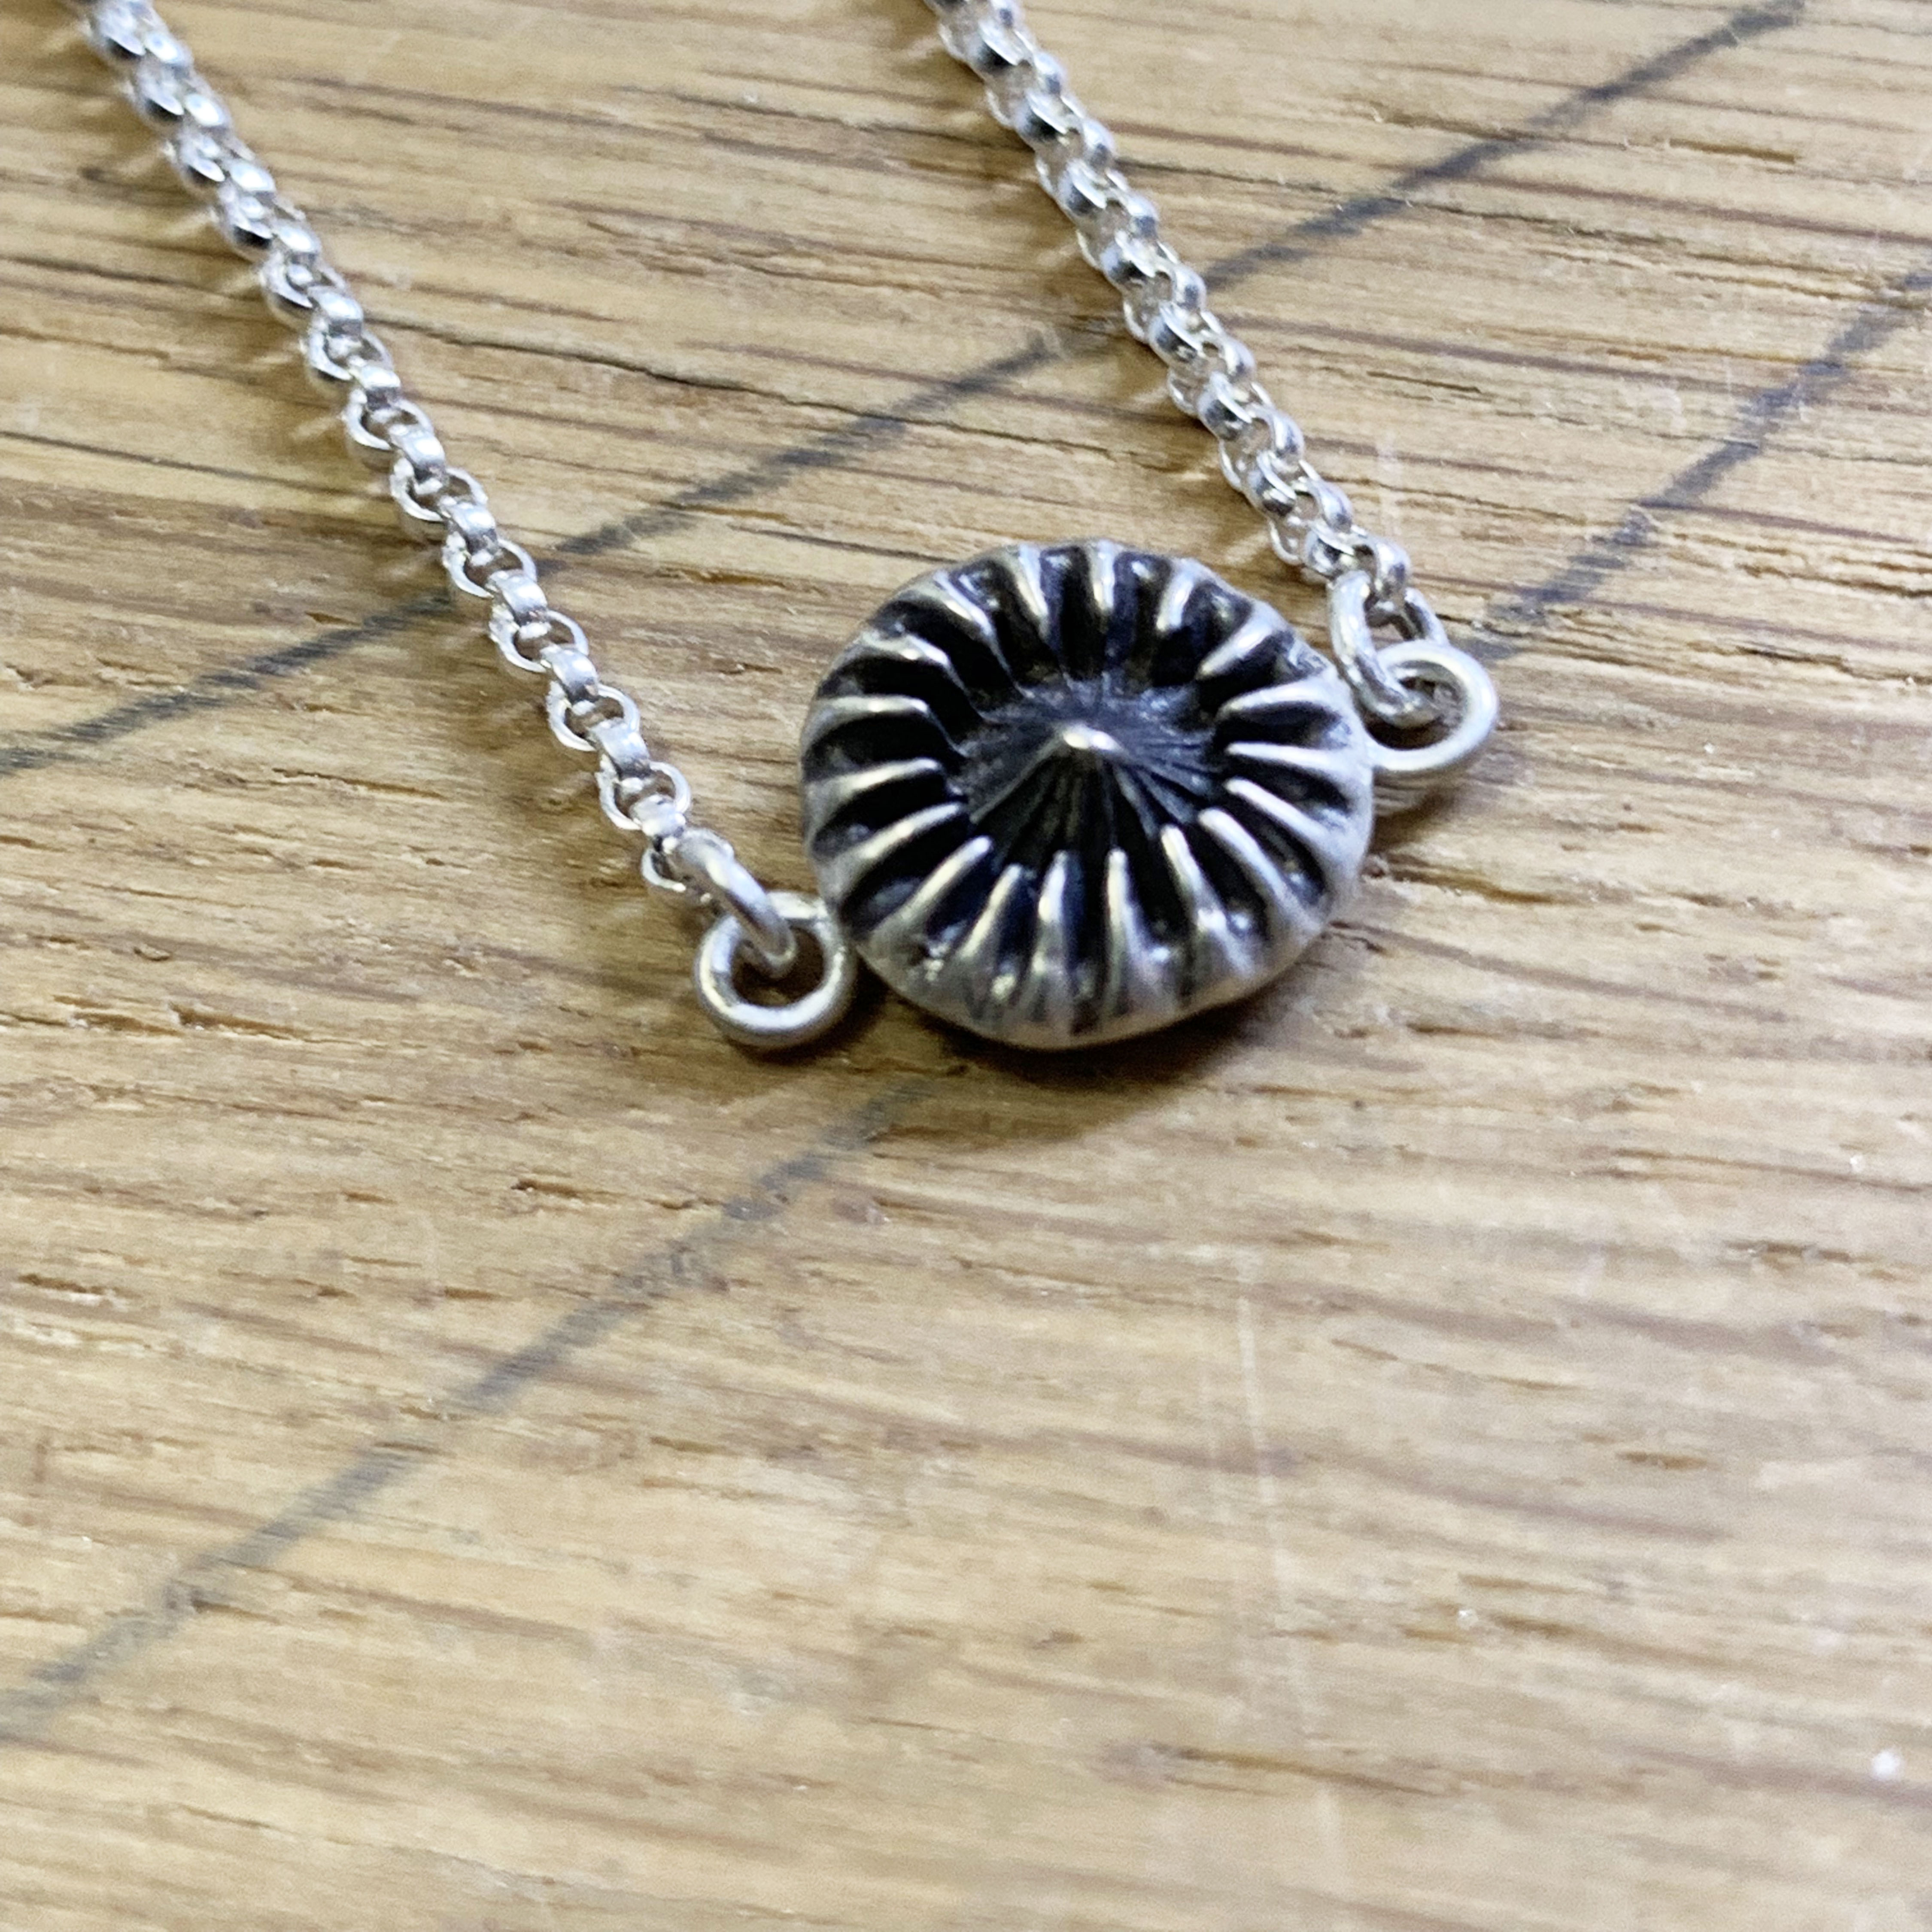 Urchin silver necklace